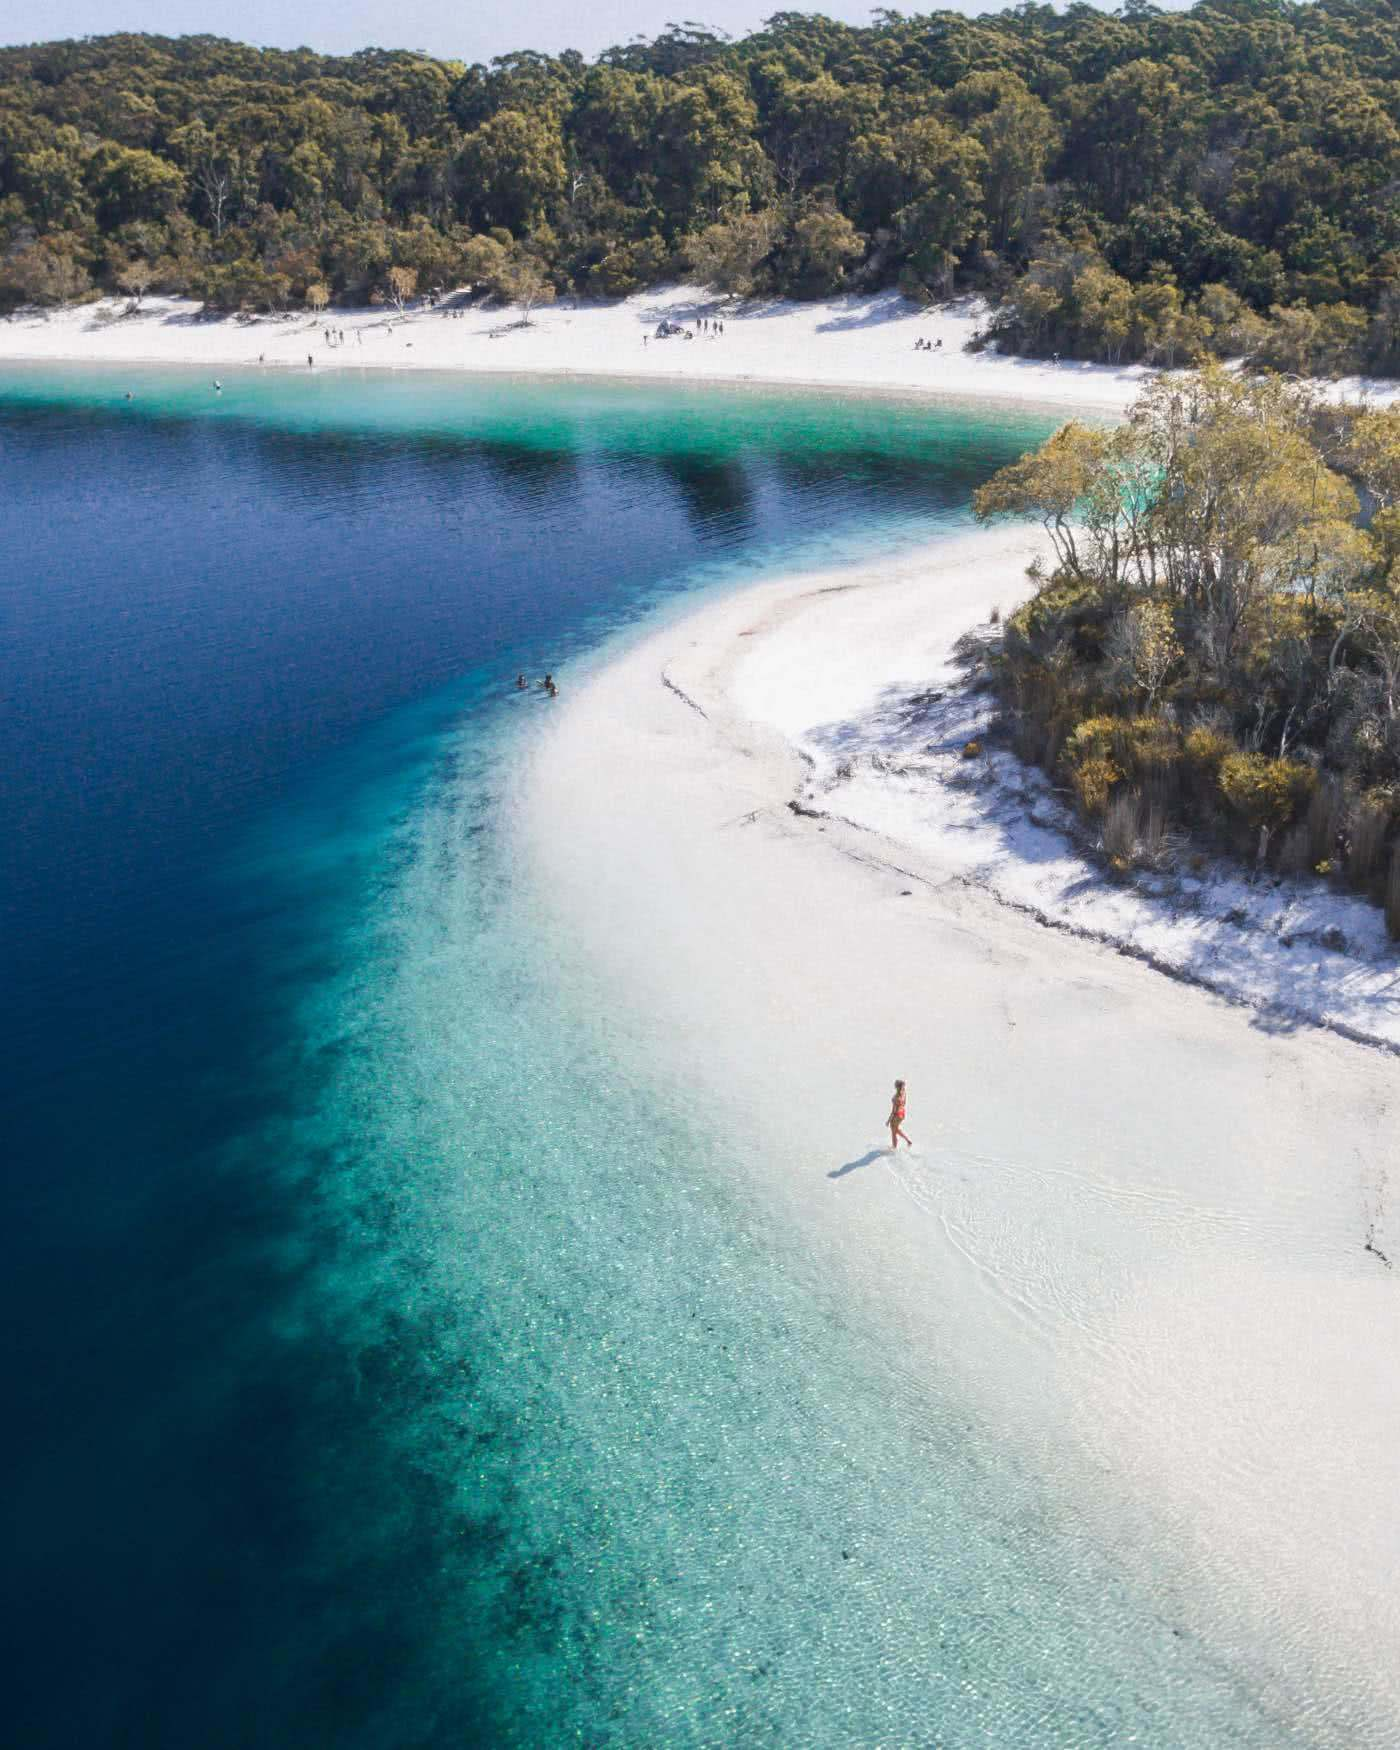 Fraser Island: Hiking To Lake McKenzie (No 4WD Required), Scott Pass, blue water, lake, woman, sand, rainforest